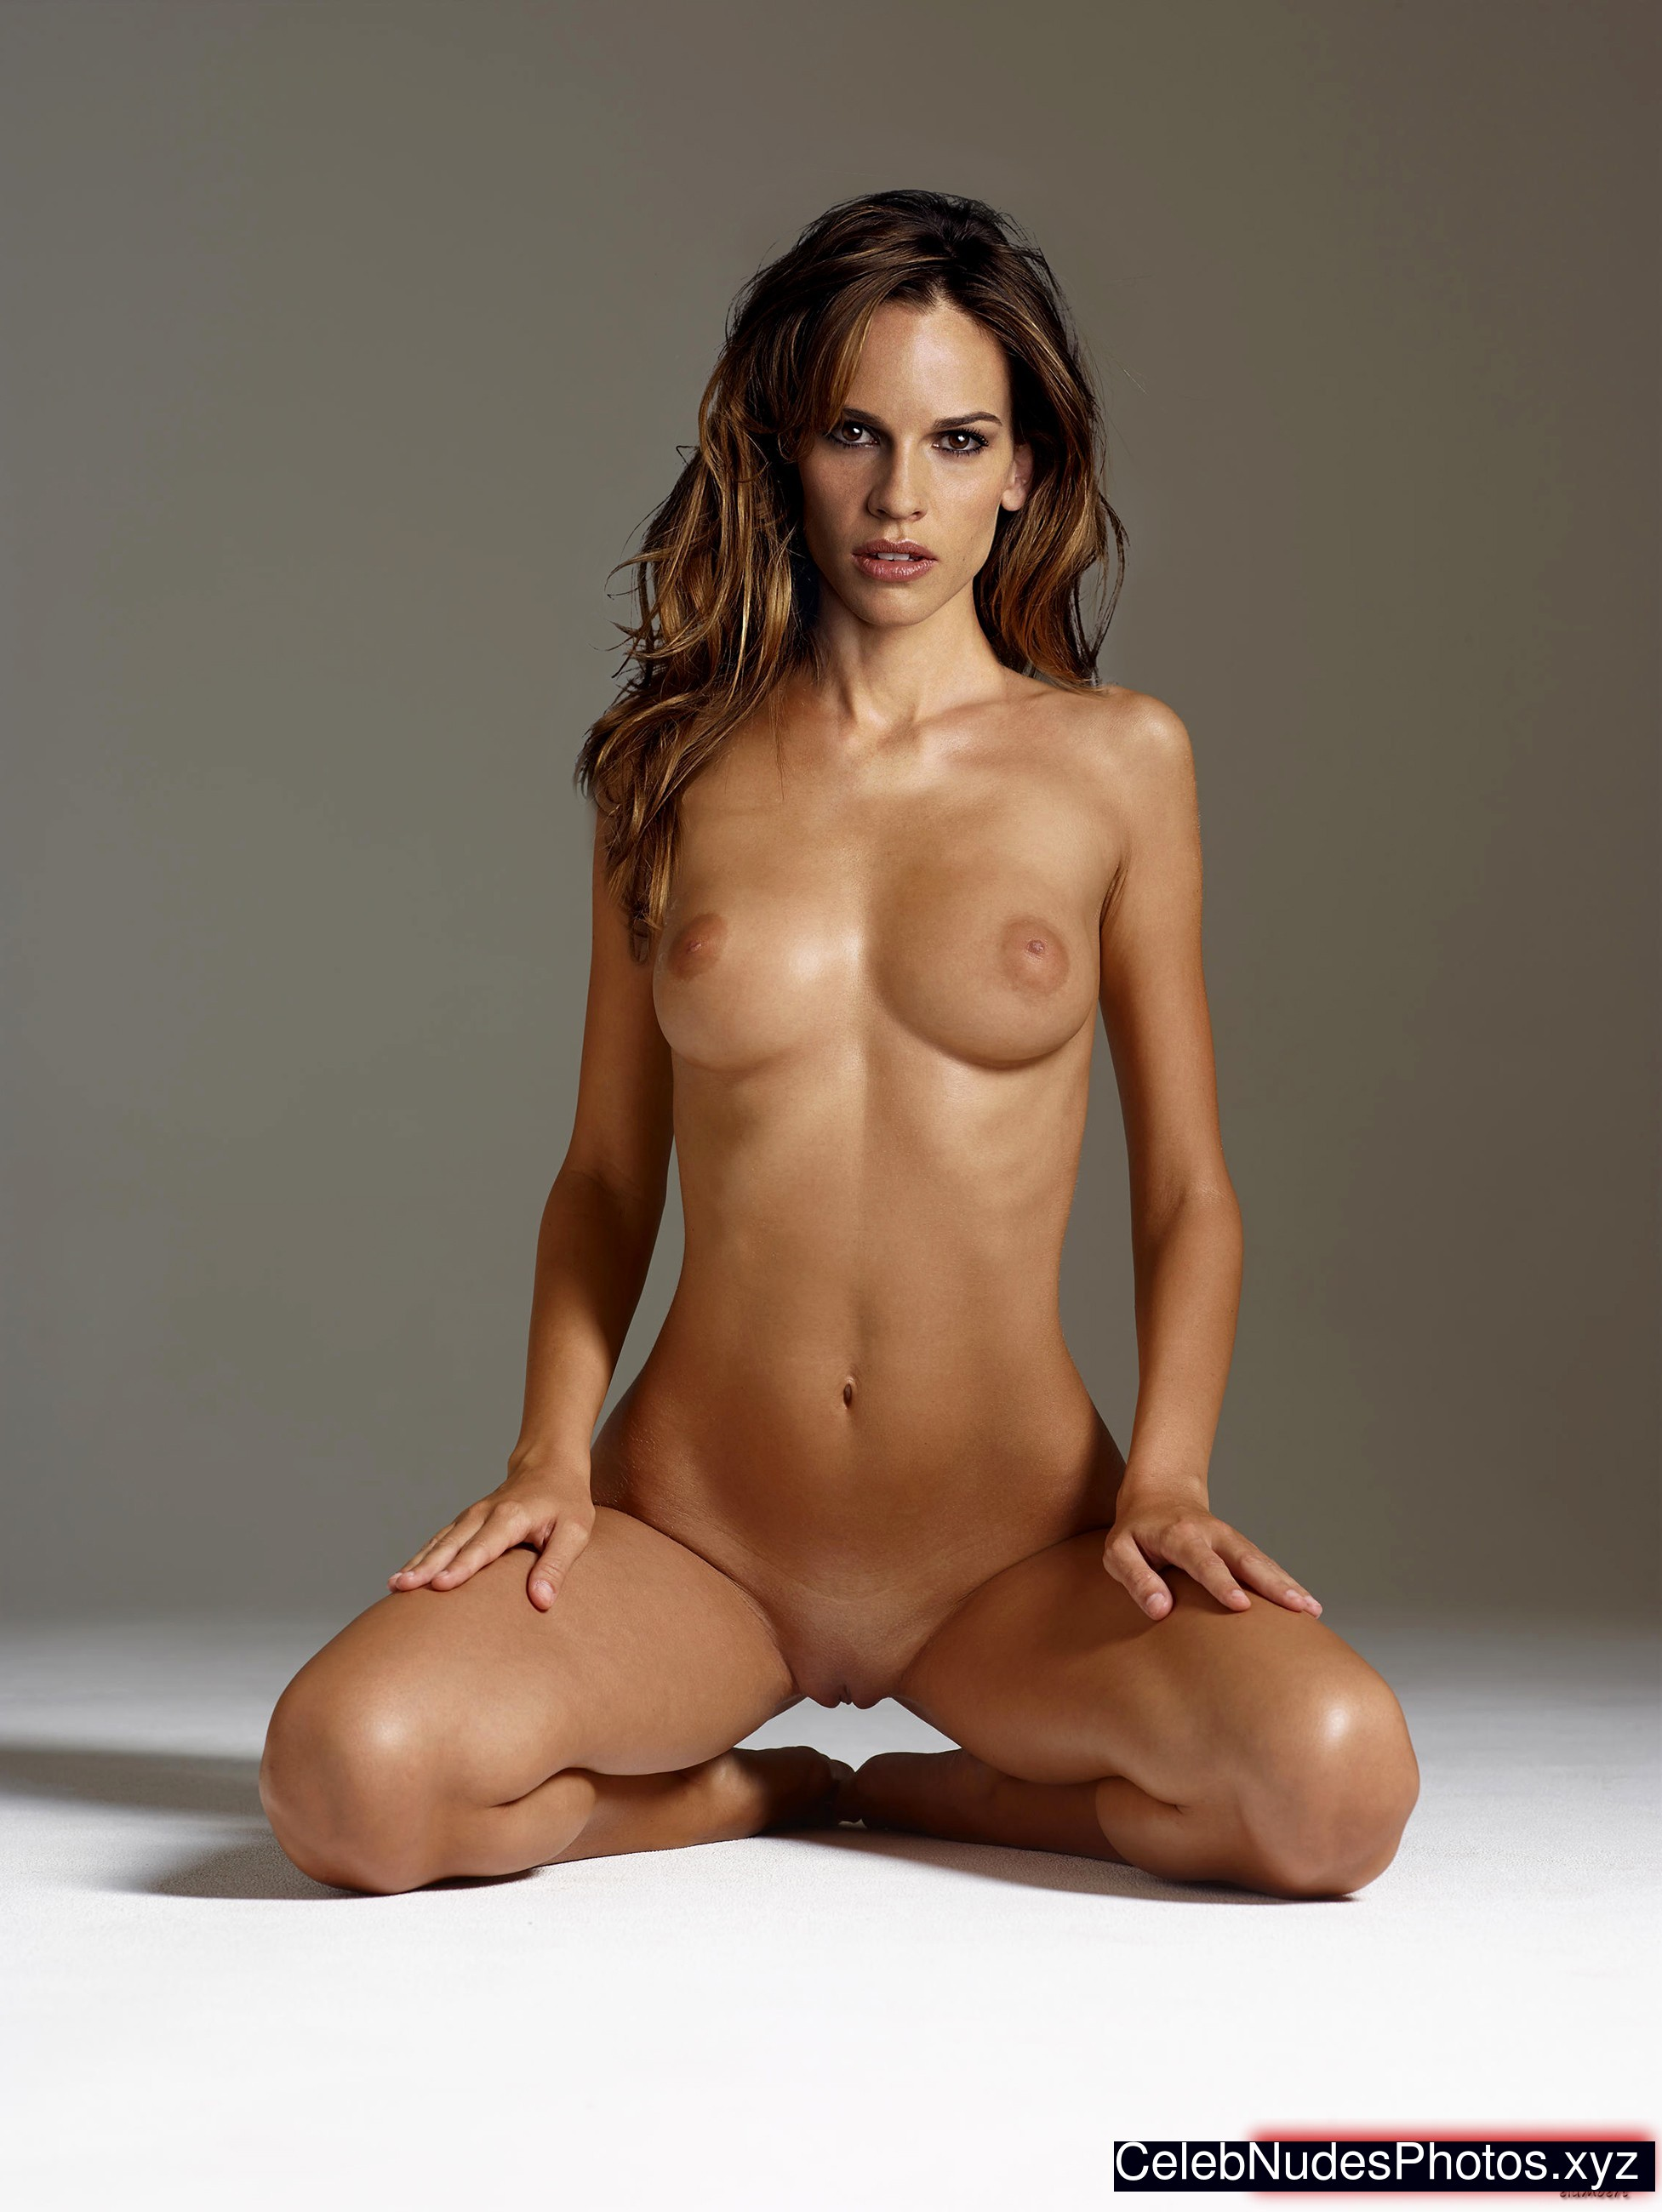 hilary swank in the nude